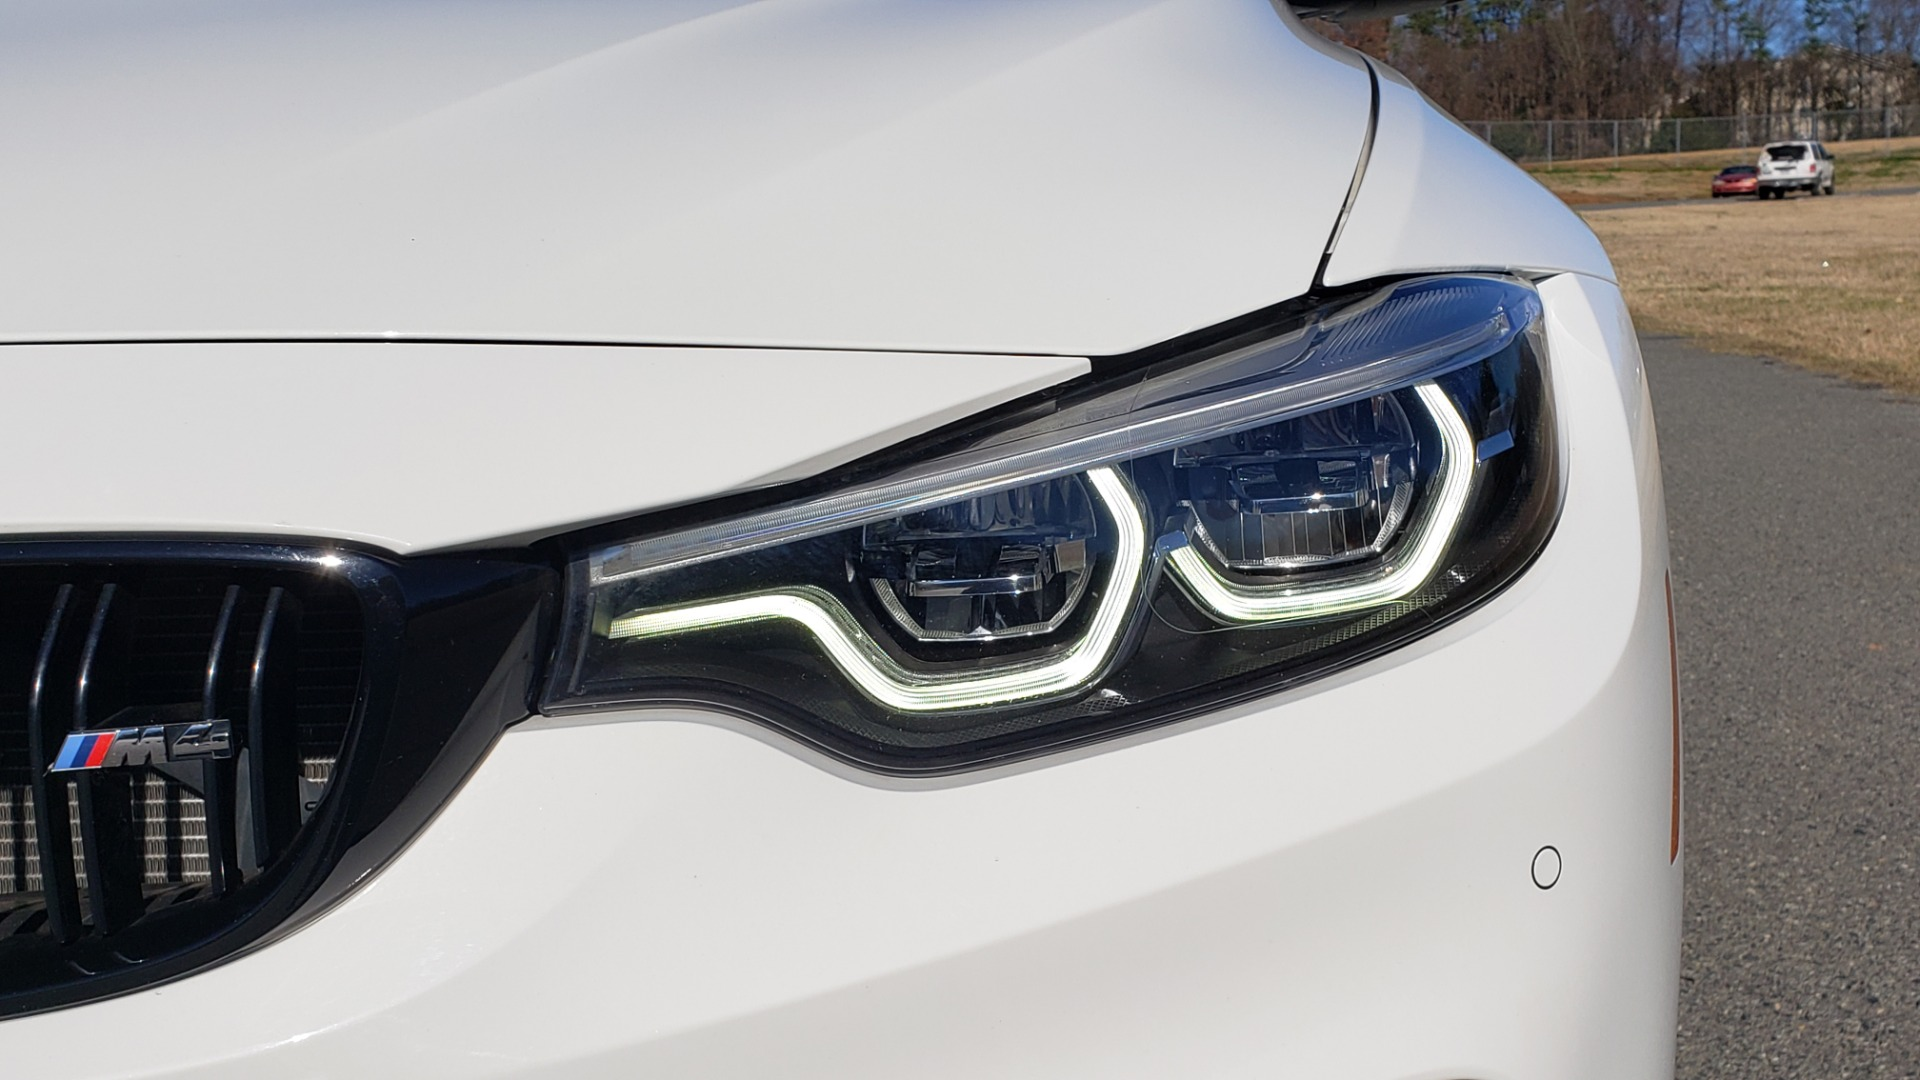 Used 2018 BMW M4 COMP PKG / EXEC / M-DRIVER / PARK CNTRL / ACTIVE BLIND SPOT for sale Sold at Formula Imports in Charlotte NC 28227 14